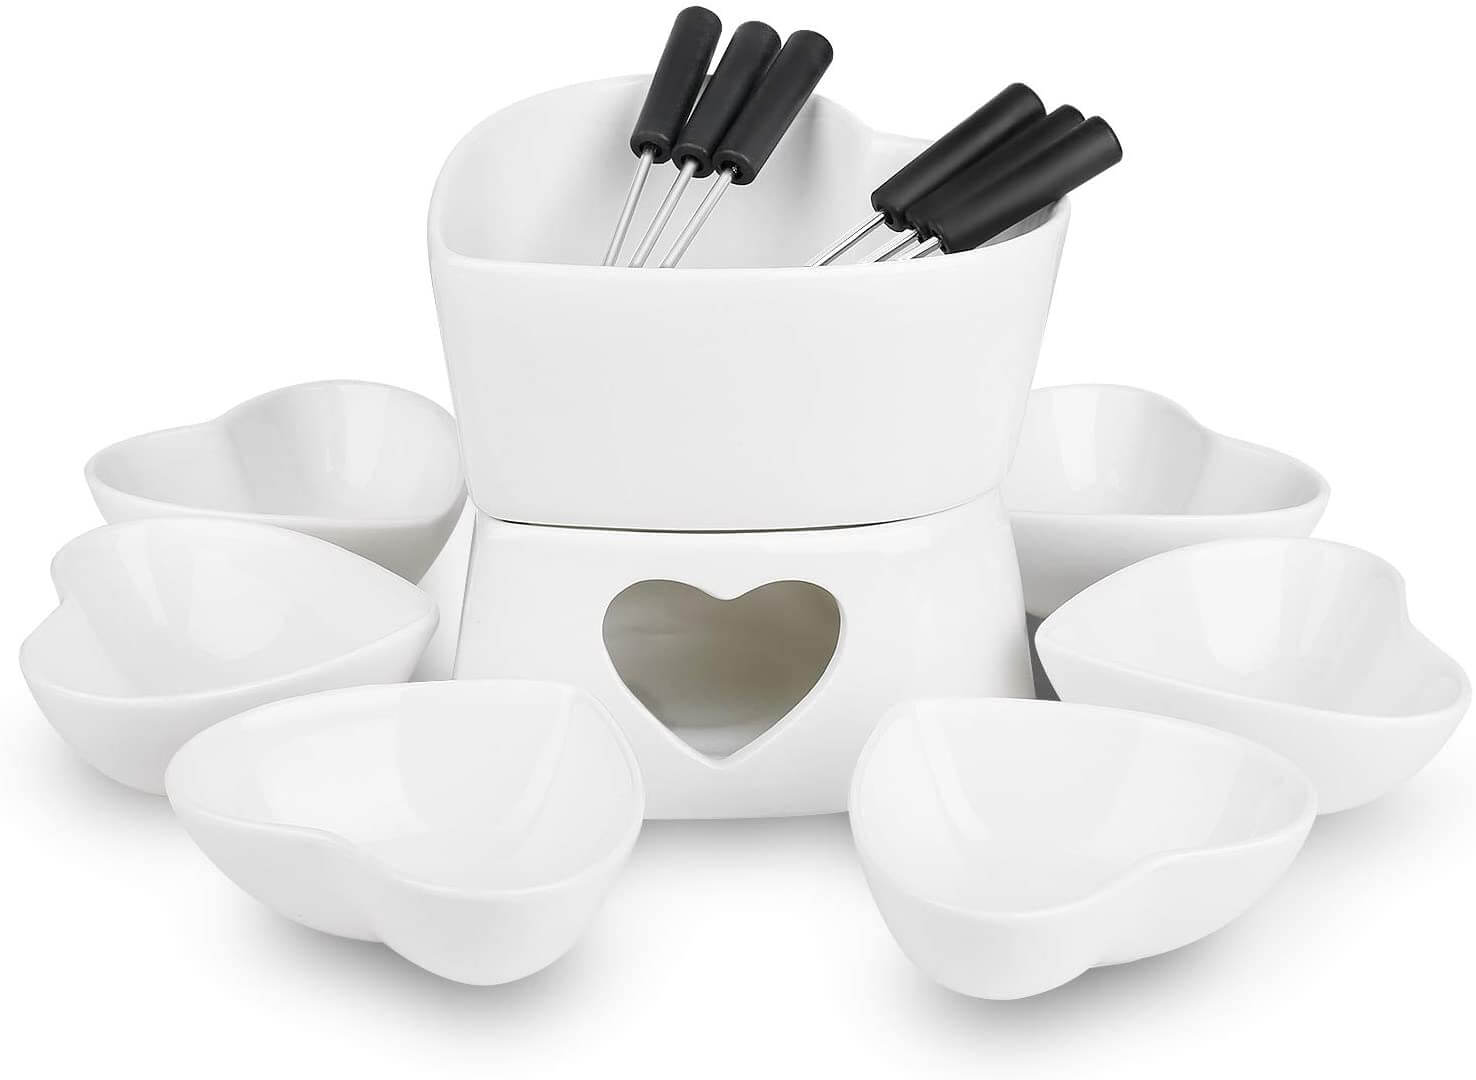 Zen Kitchen Fondue Pot Set, Glazed Ceramic Fondue Set